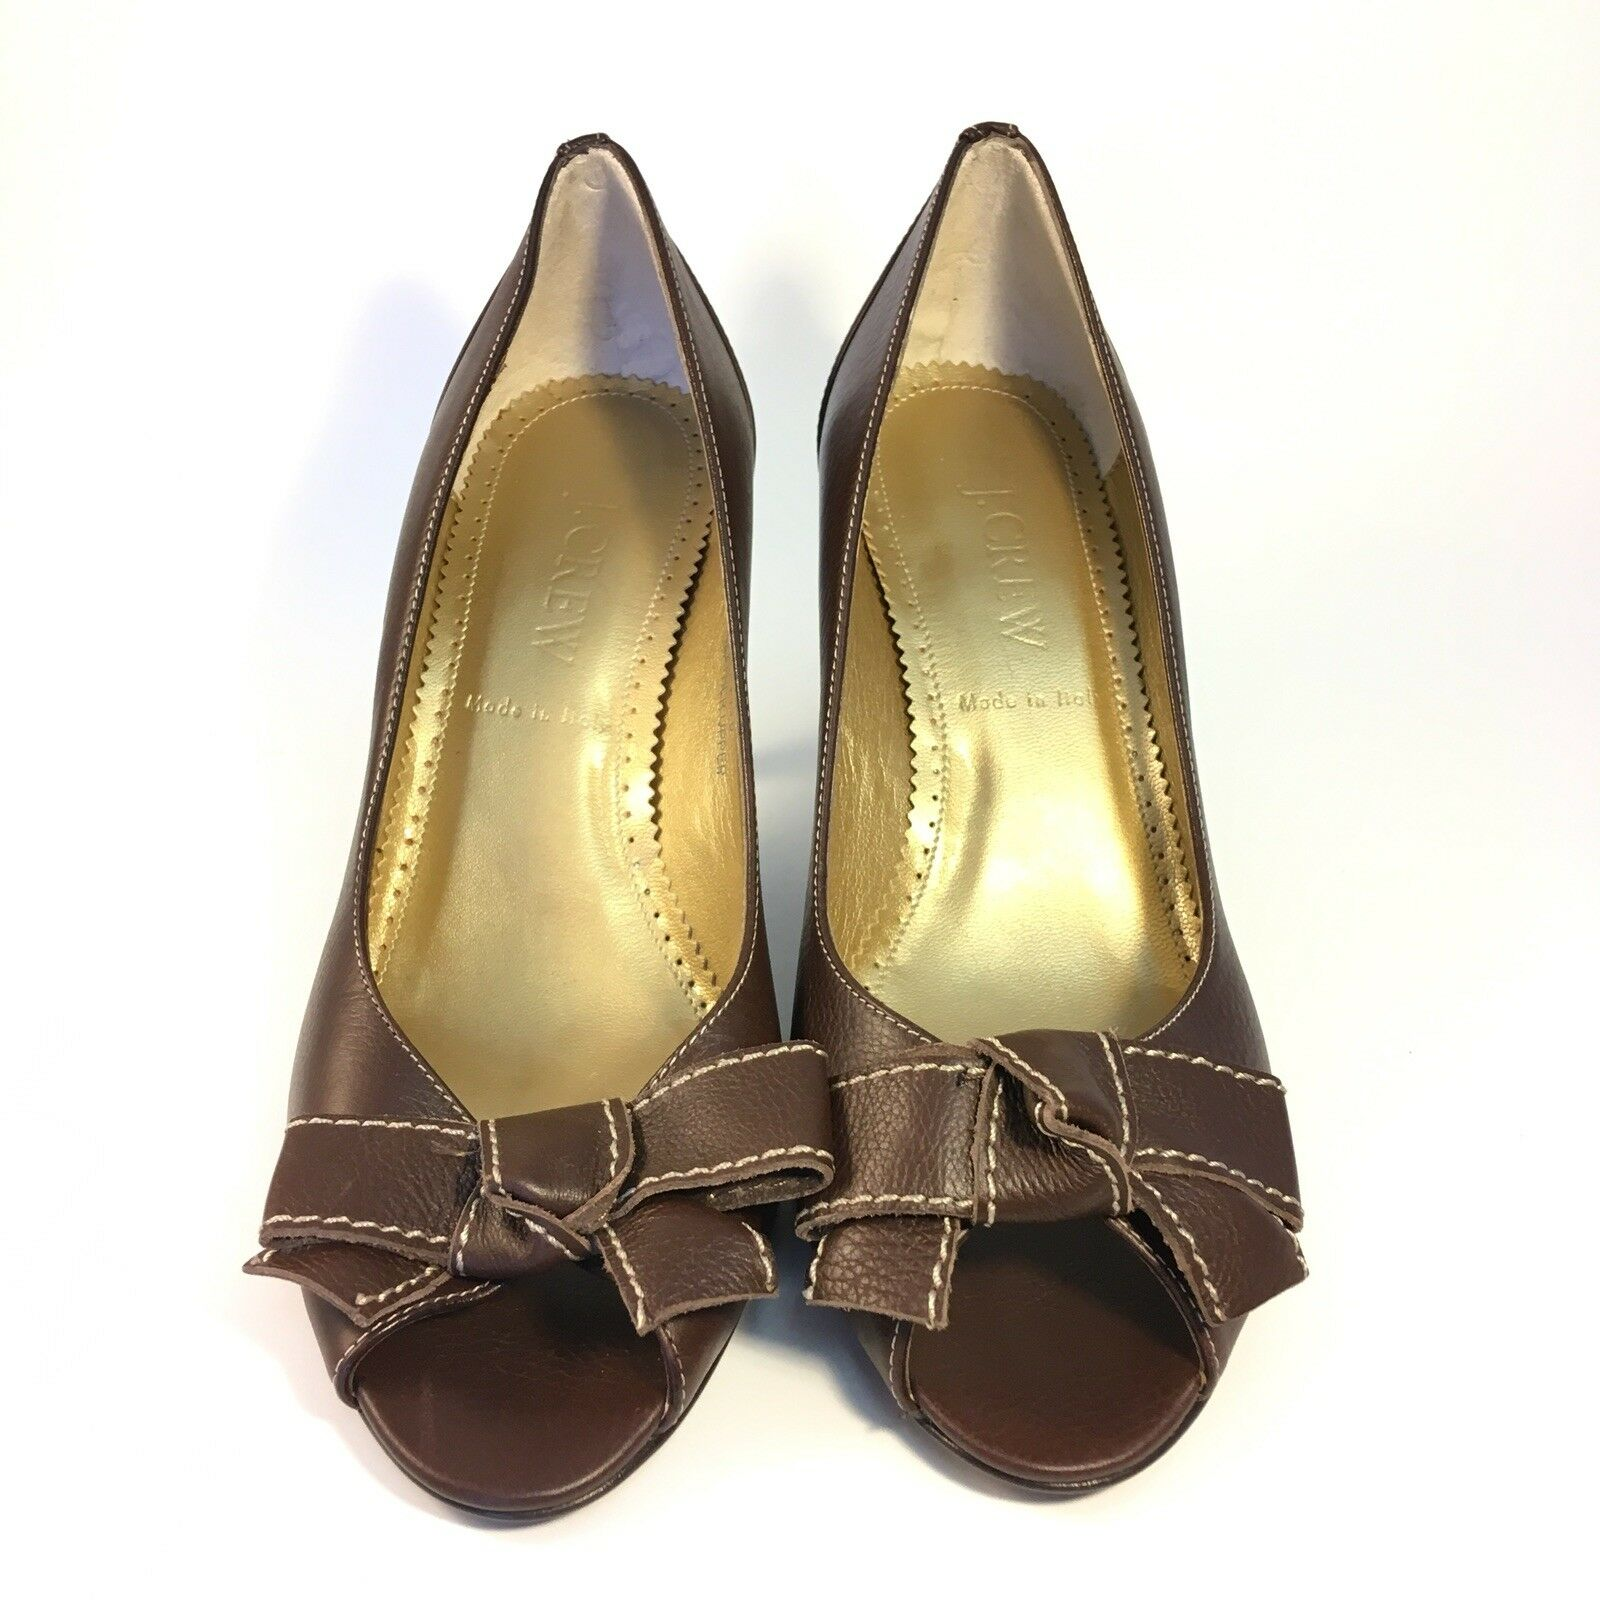 J. crew 6.5 Peep Toe Heels braun Bow Made In 40's  Leather Retro 40's In 50's Pumps 0e3e8f